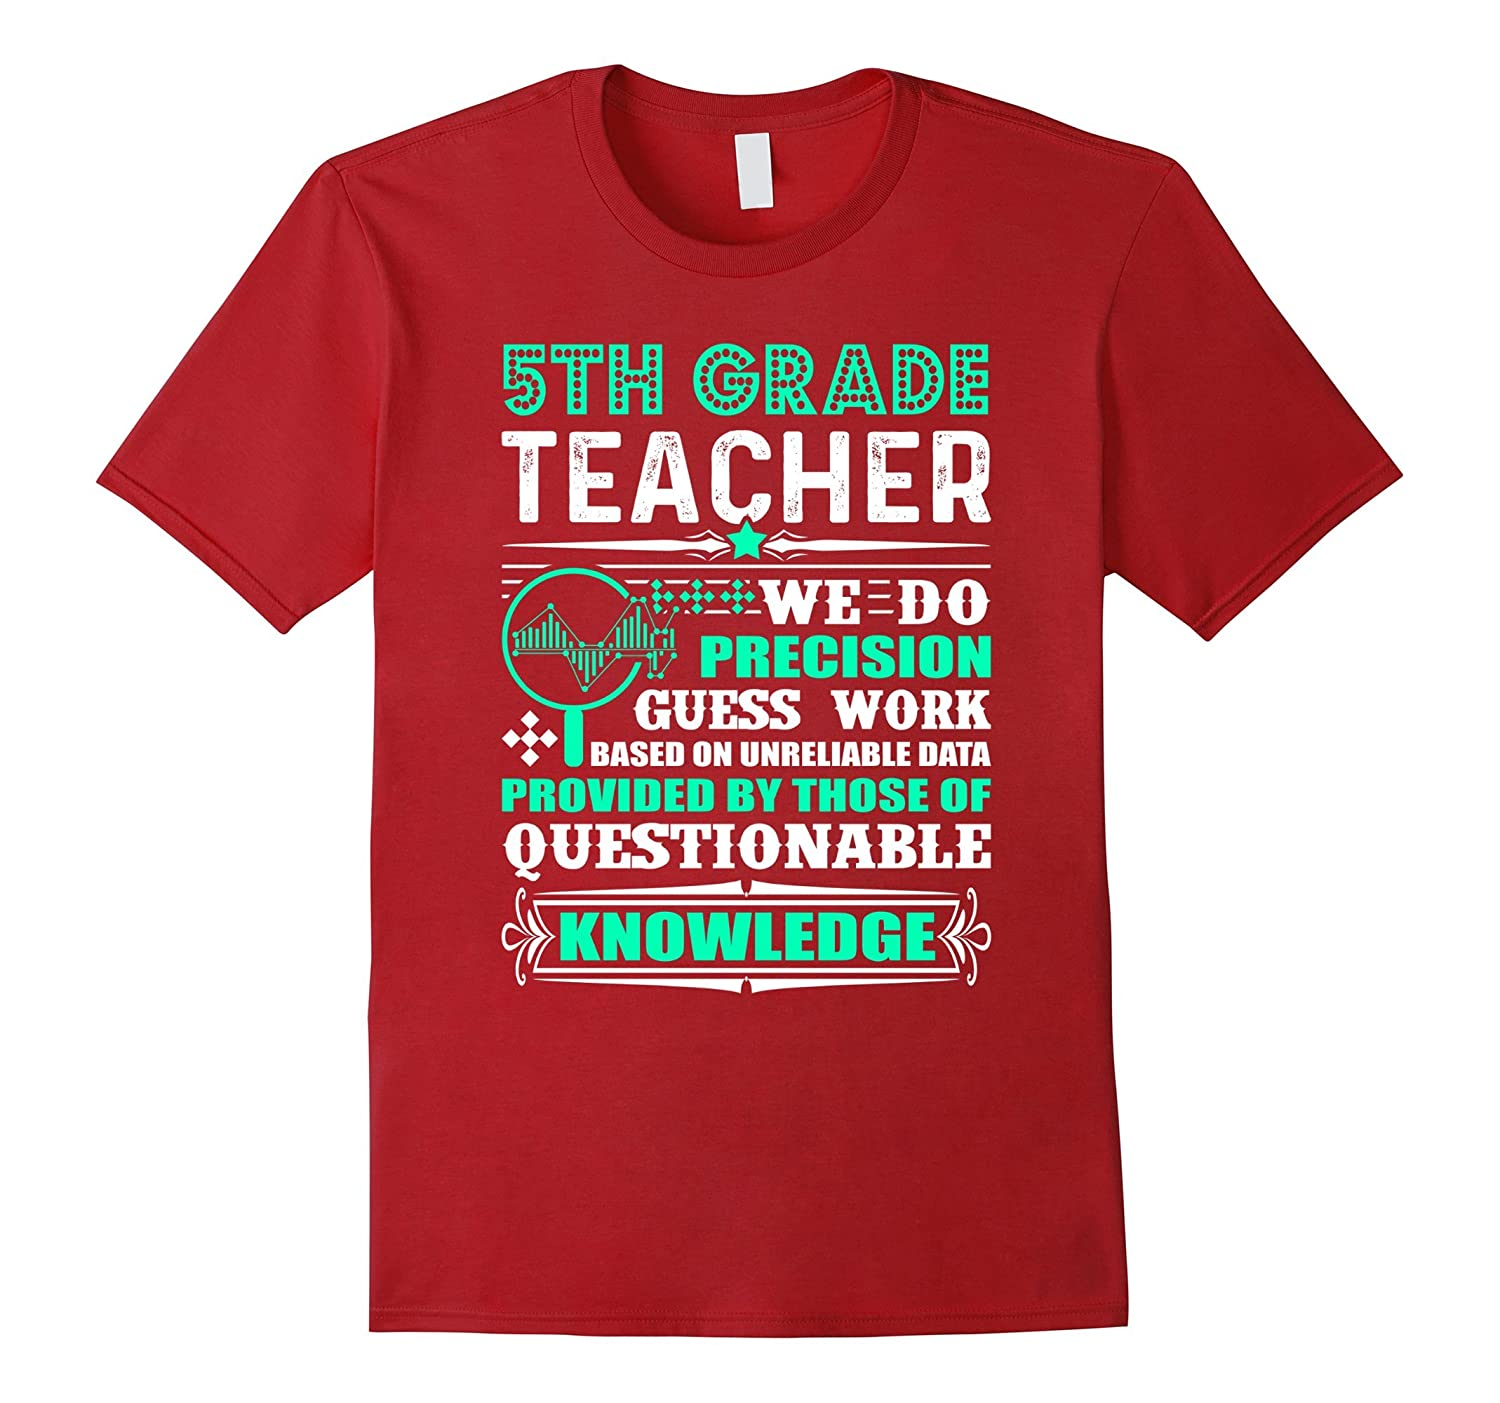 5Th Grade Teacher Shirt For Women And Men